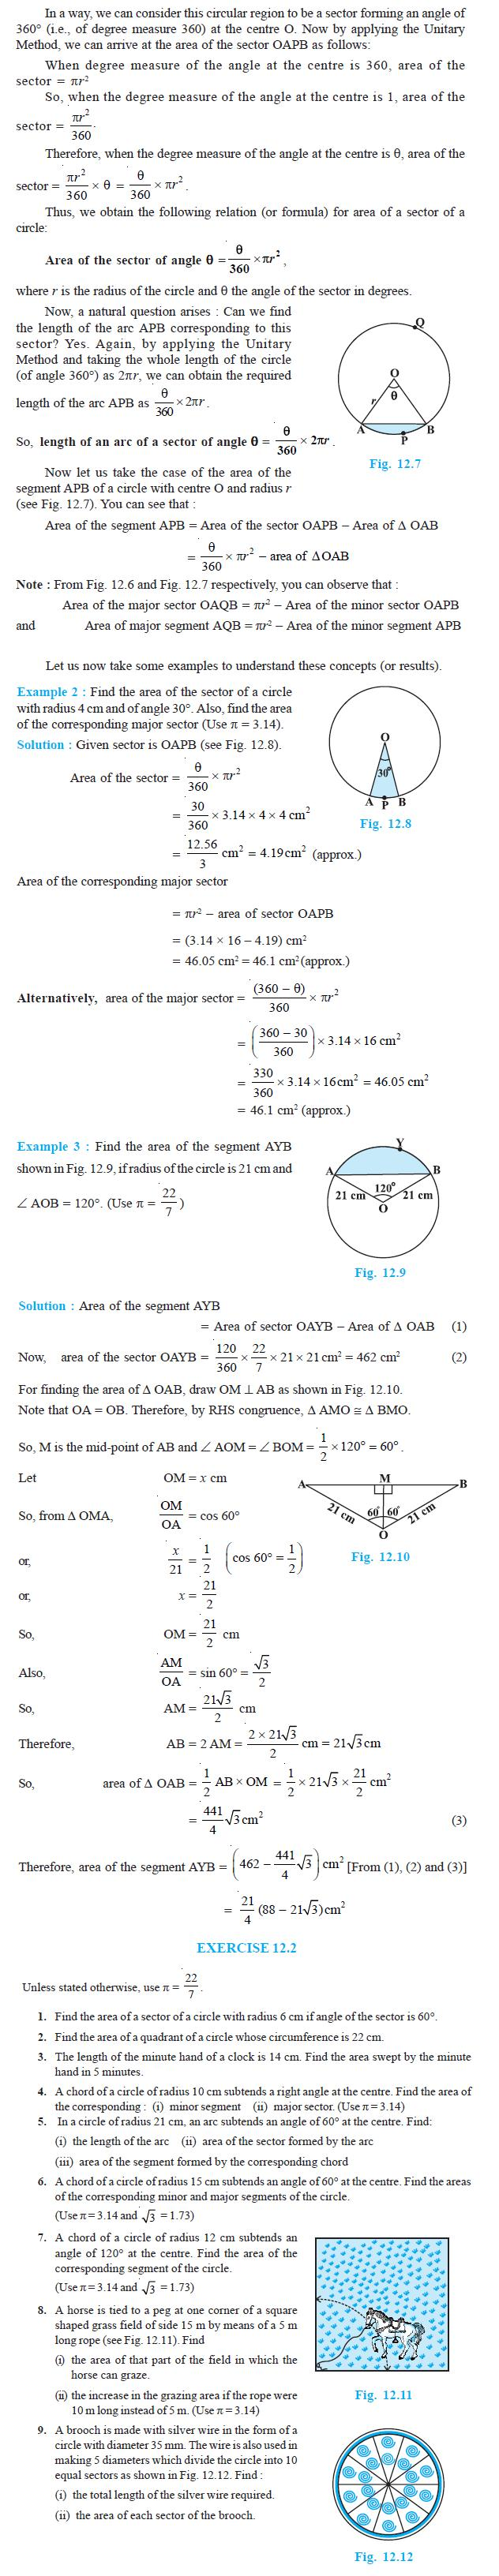 NCERT Class X Maths: Chapter 12 - Areas Related to Circles